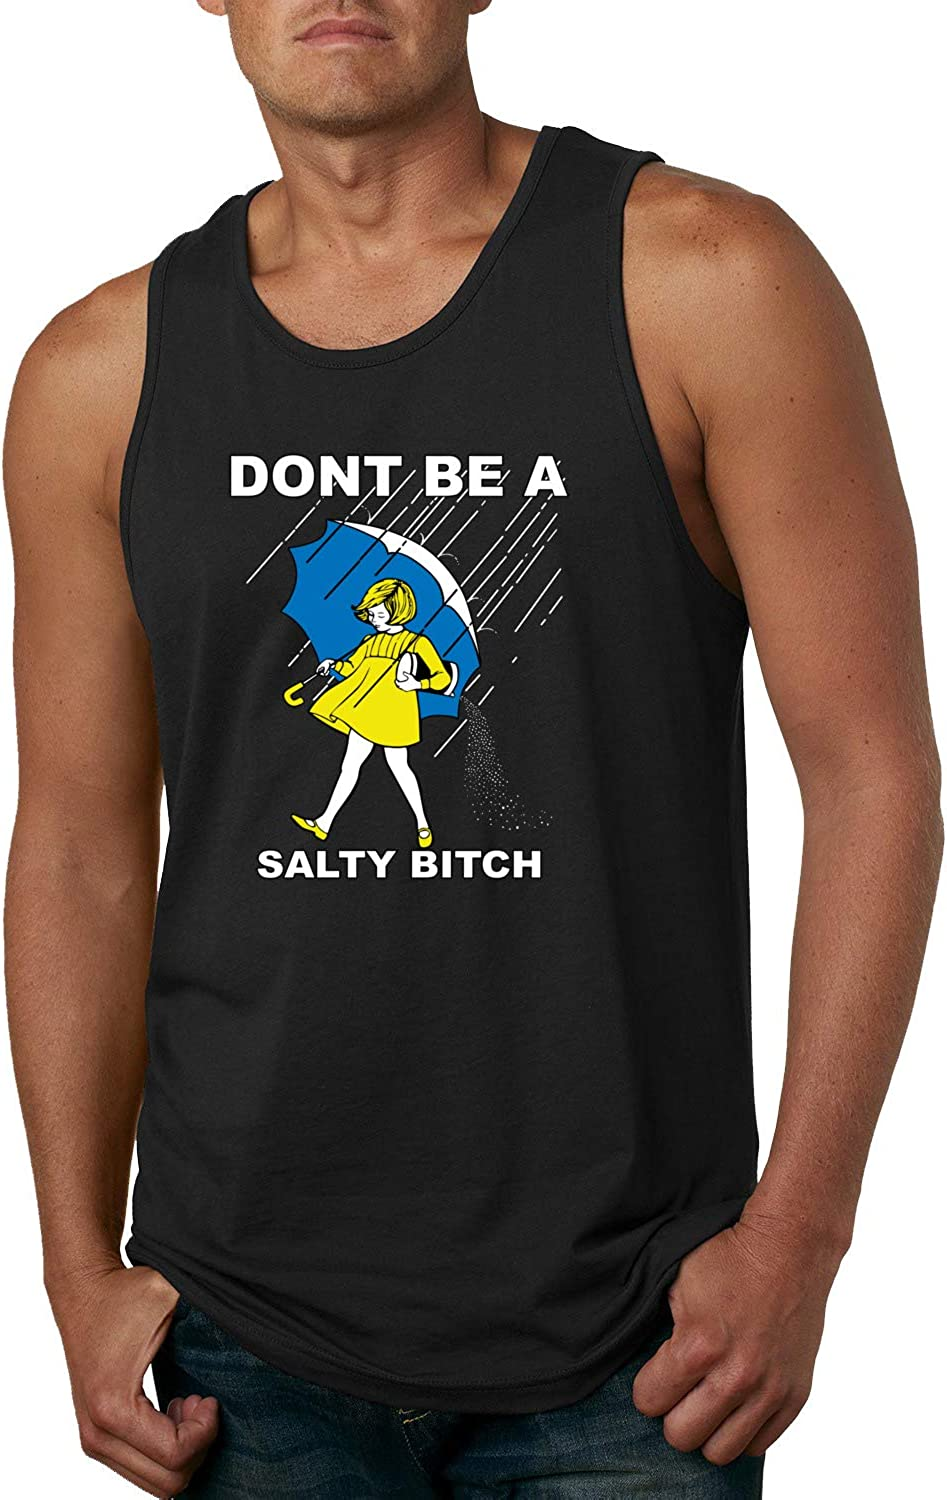 Wild Bobby Don't Be a Salty Bitch | Mens Humor Graphic Tank Top